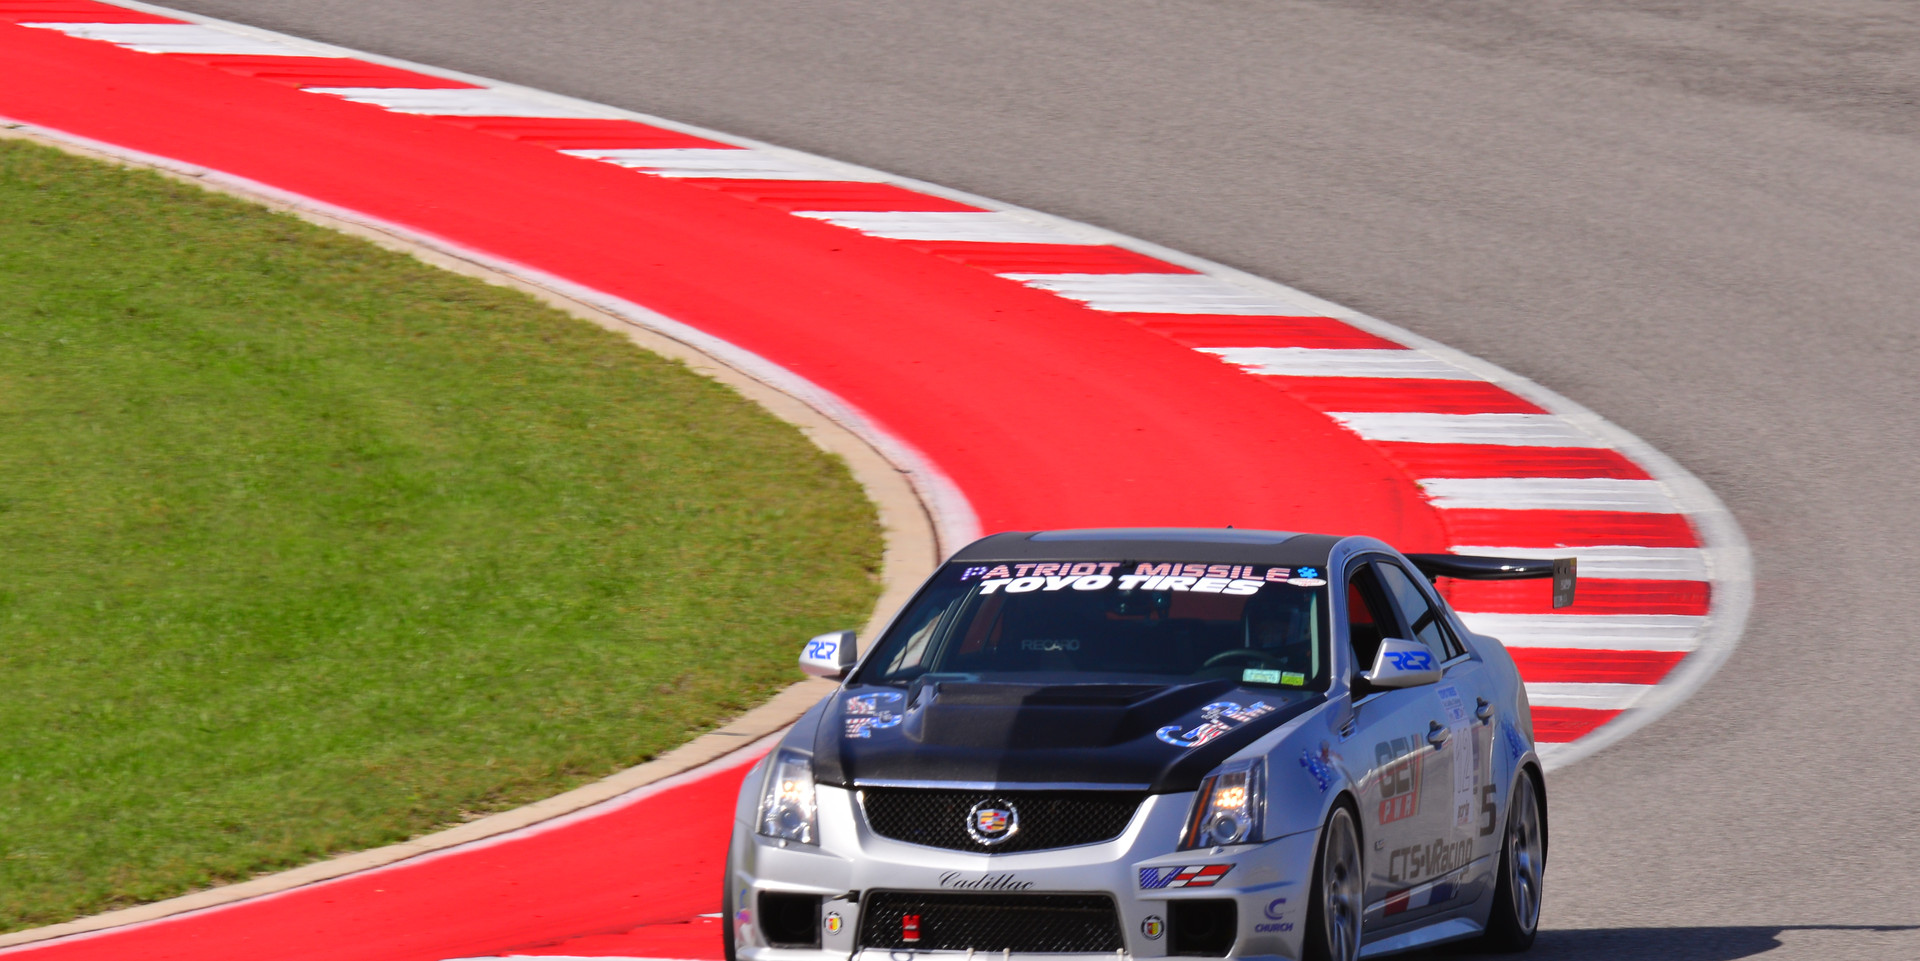 On track at the Cadillac Challenge at COTA (4-25-2015)